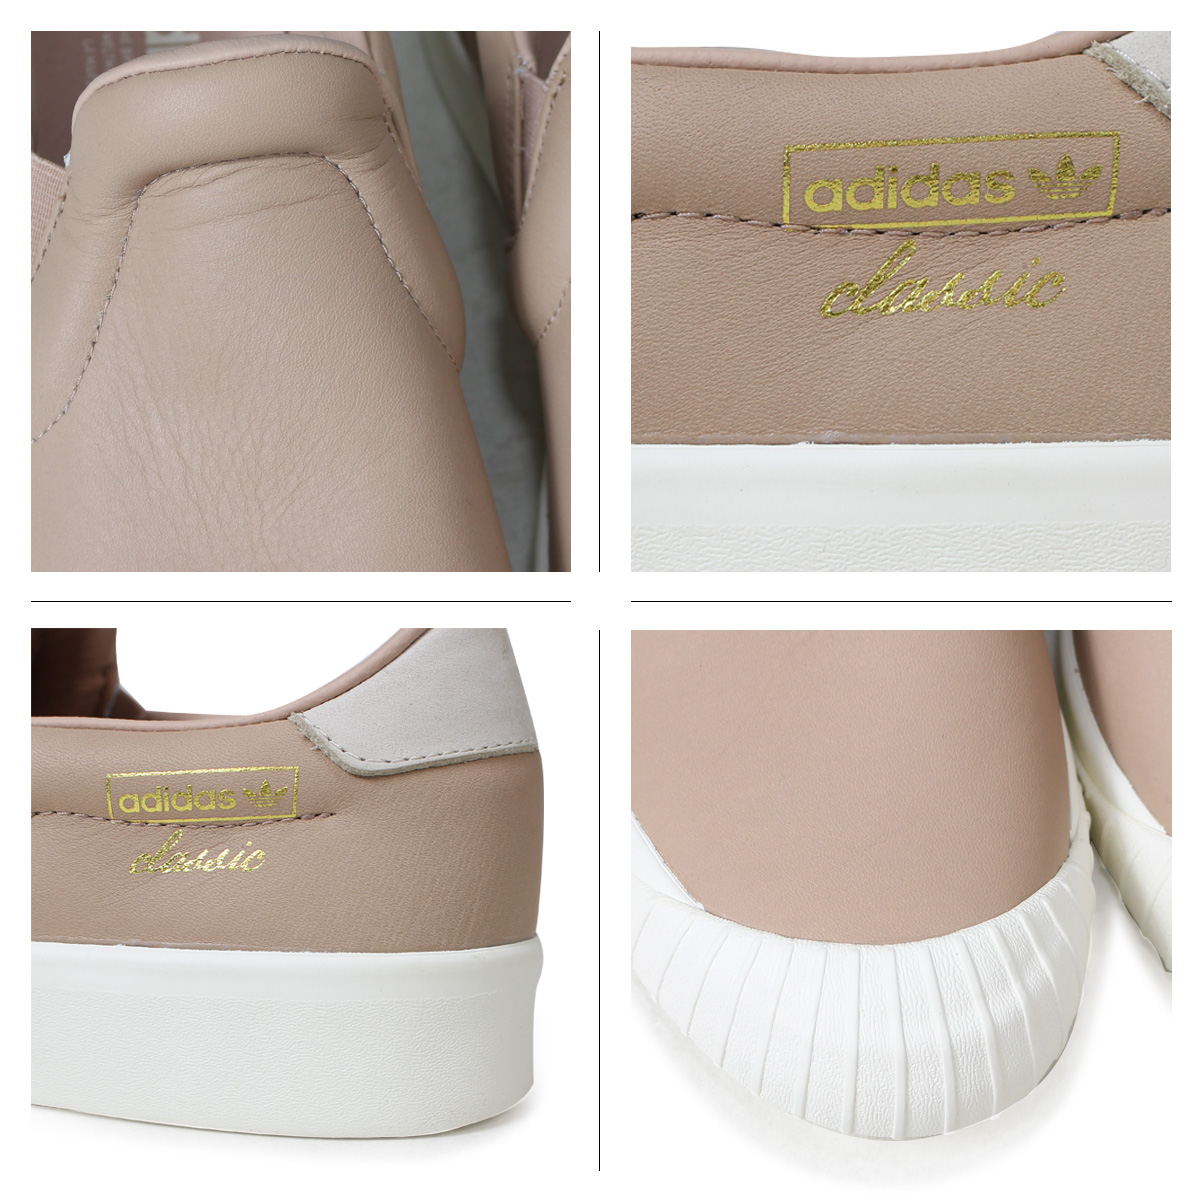 cde0f0321b4 adidas Originals Ebb phosphorus Adidas Lady s slip-ons sneakers EVERYN  SLIPON W CQ2061 beige originals